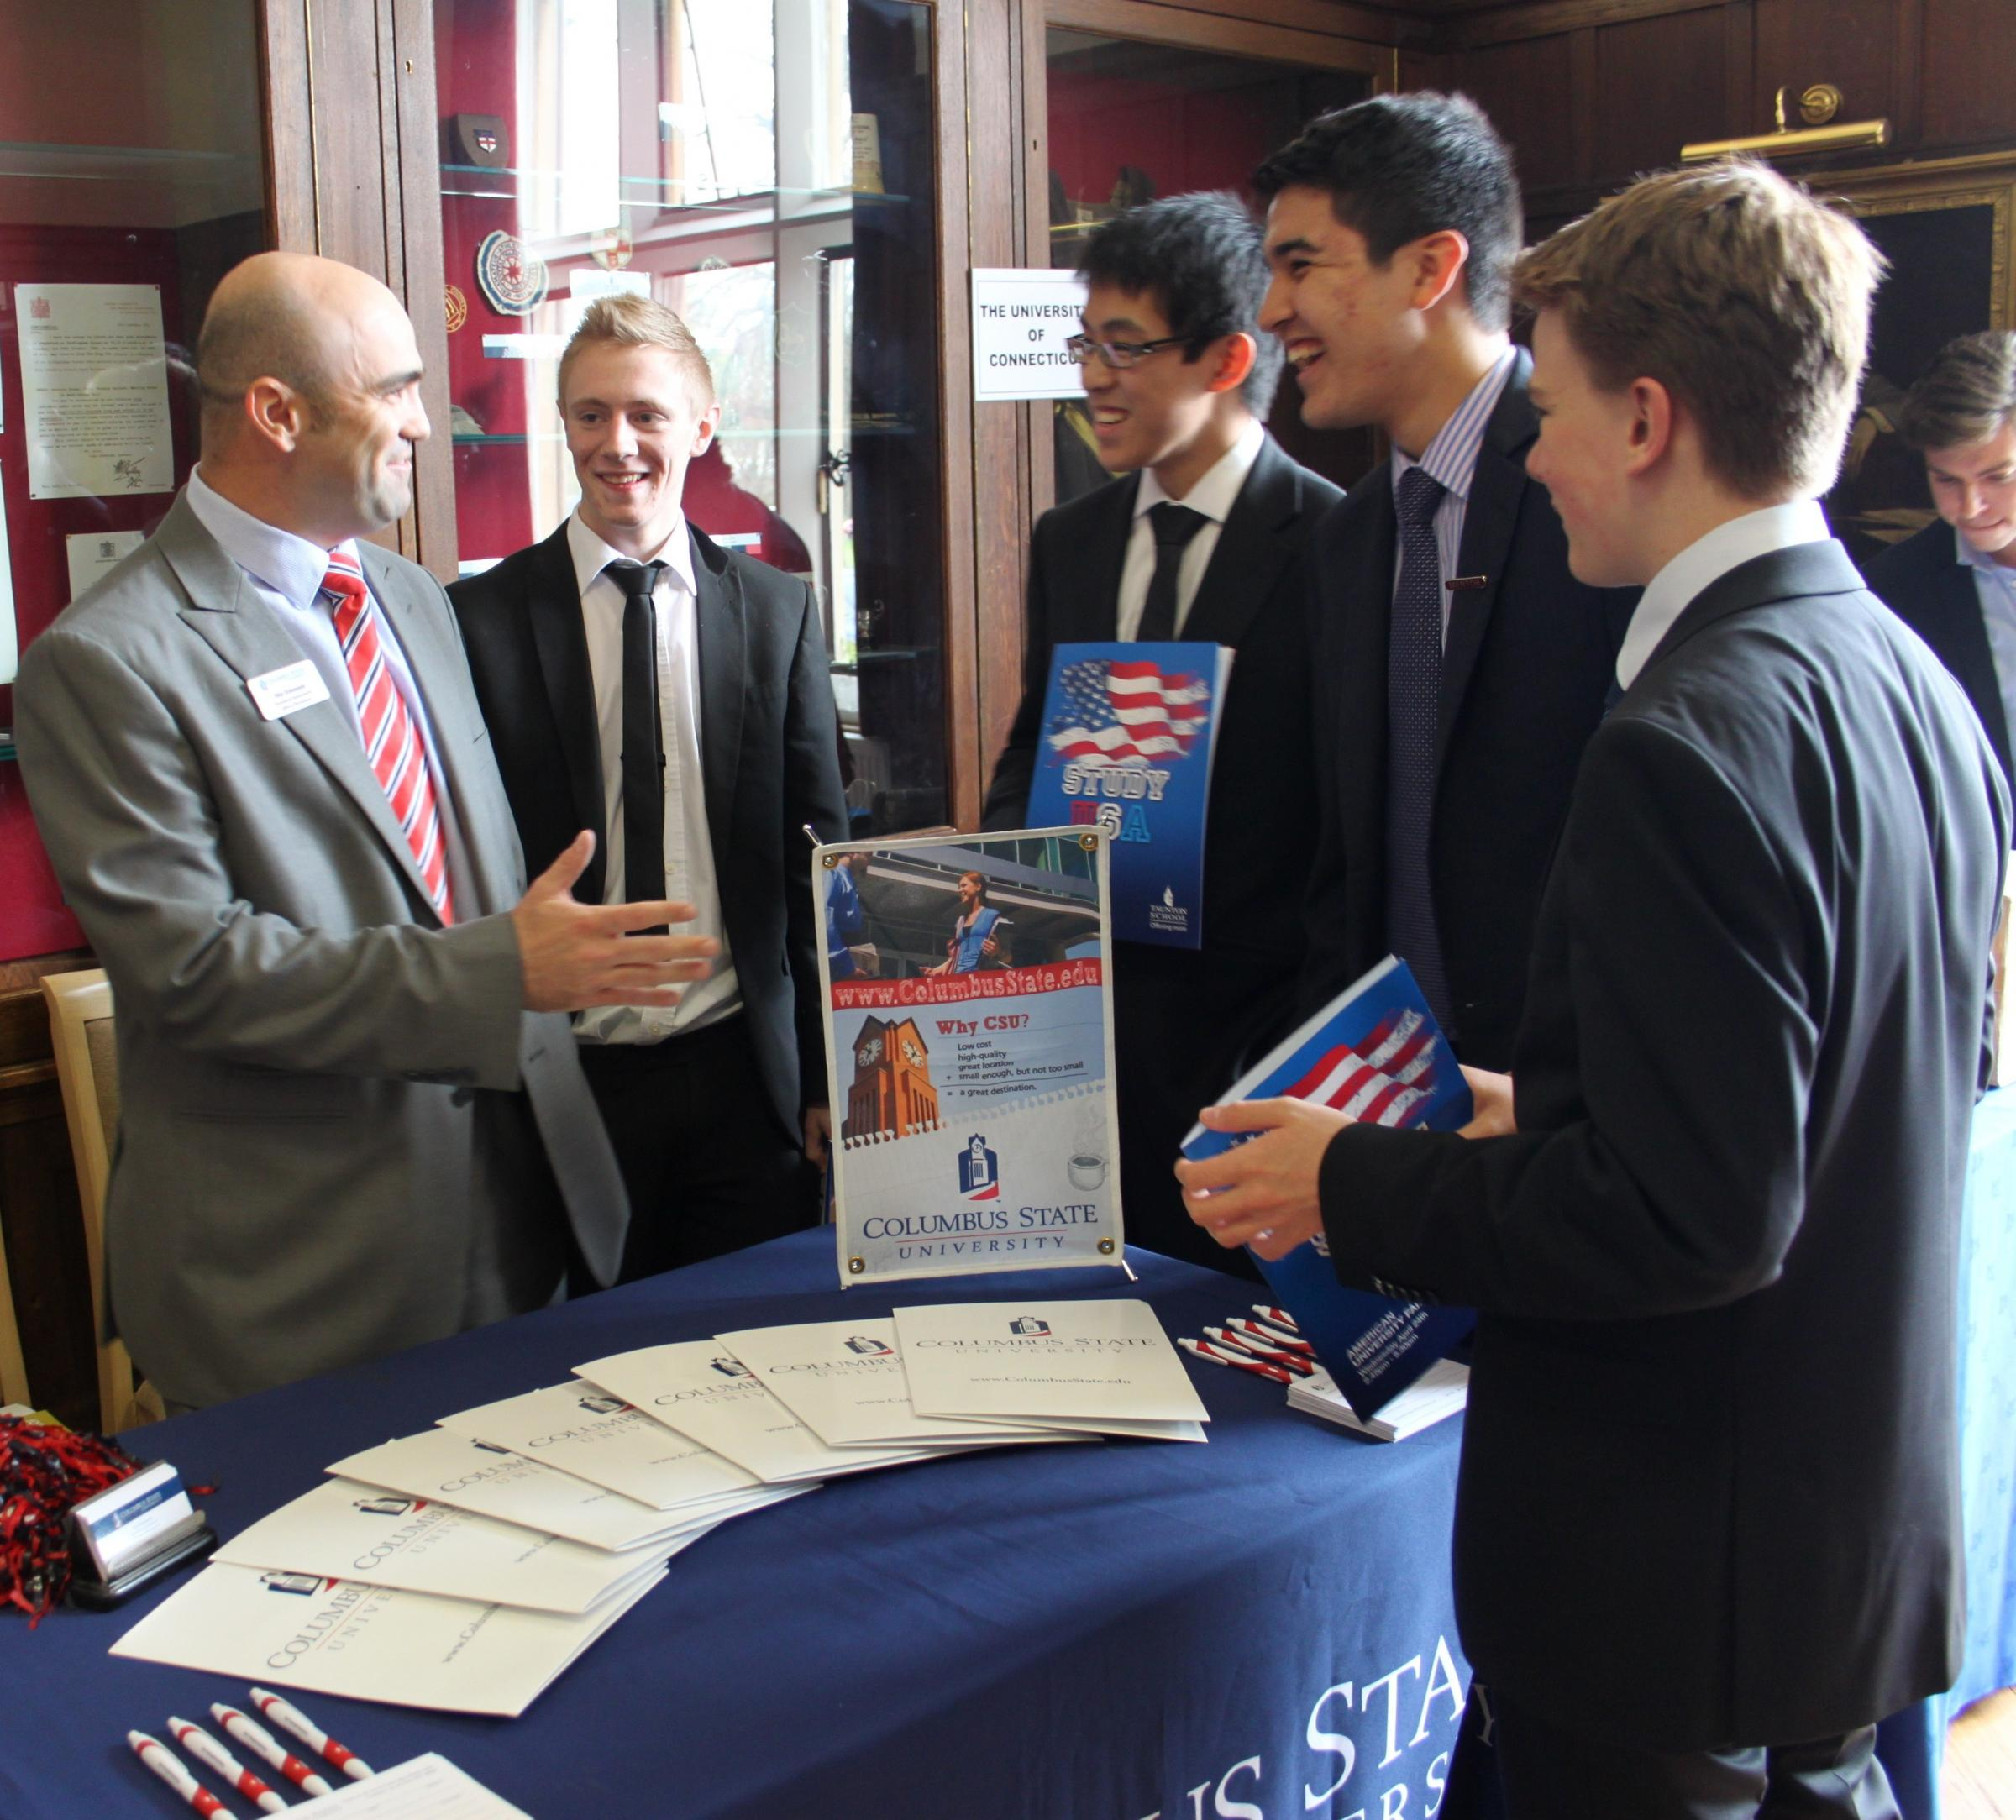 PICTURED at last year's fair are Mat Edmunds, from Columbus State University, with Taunton School students Simon W